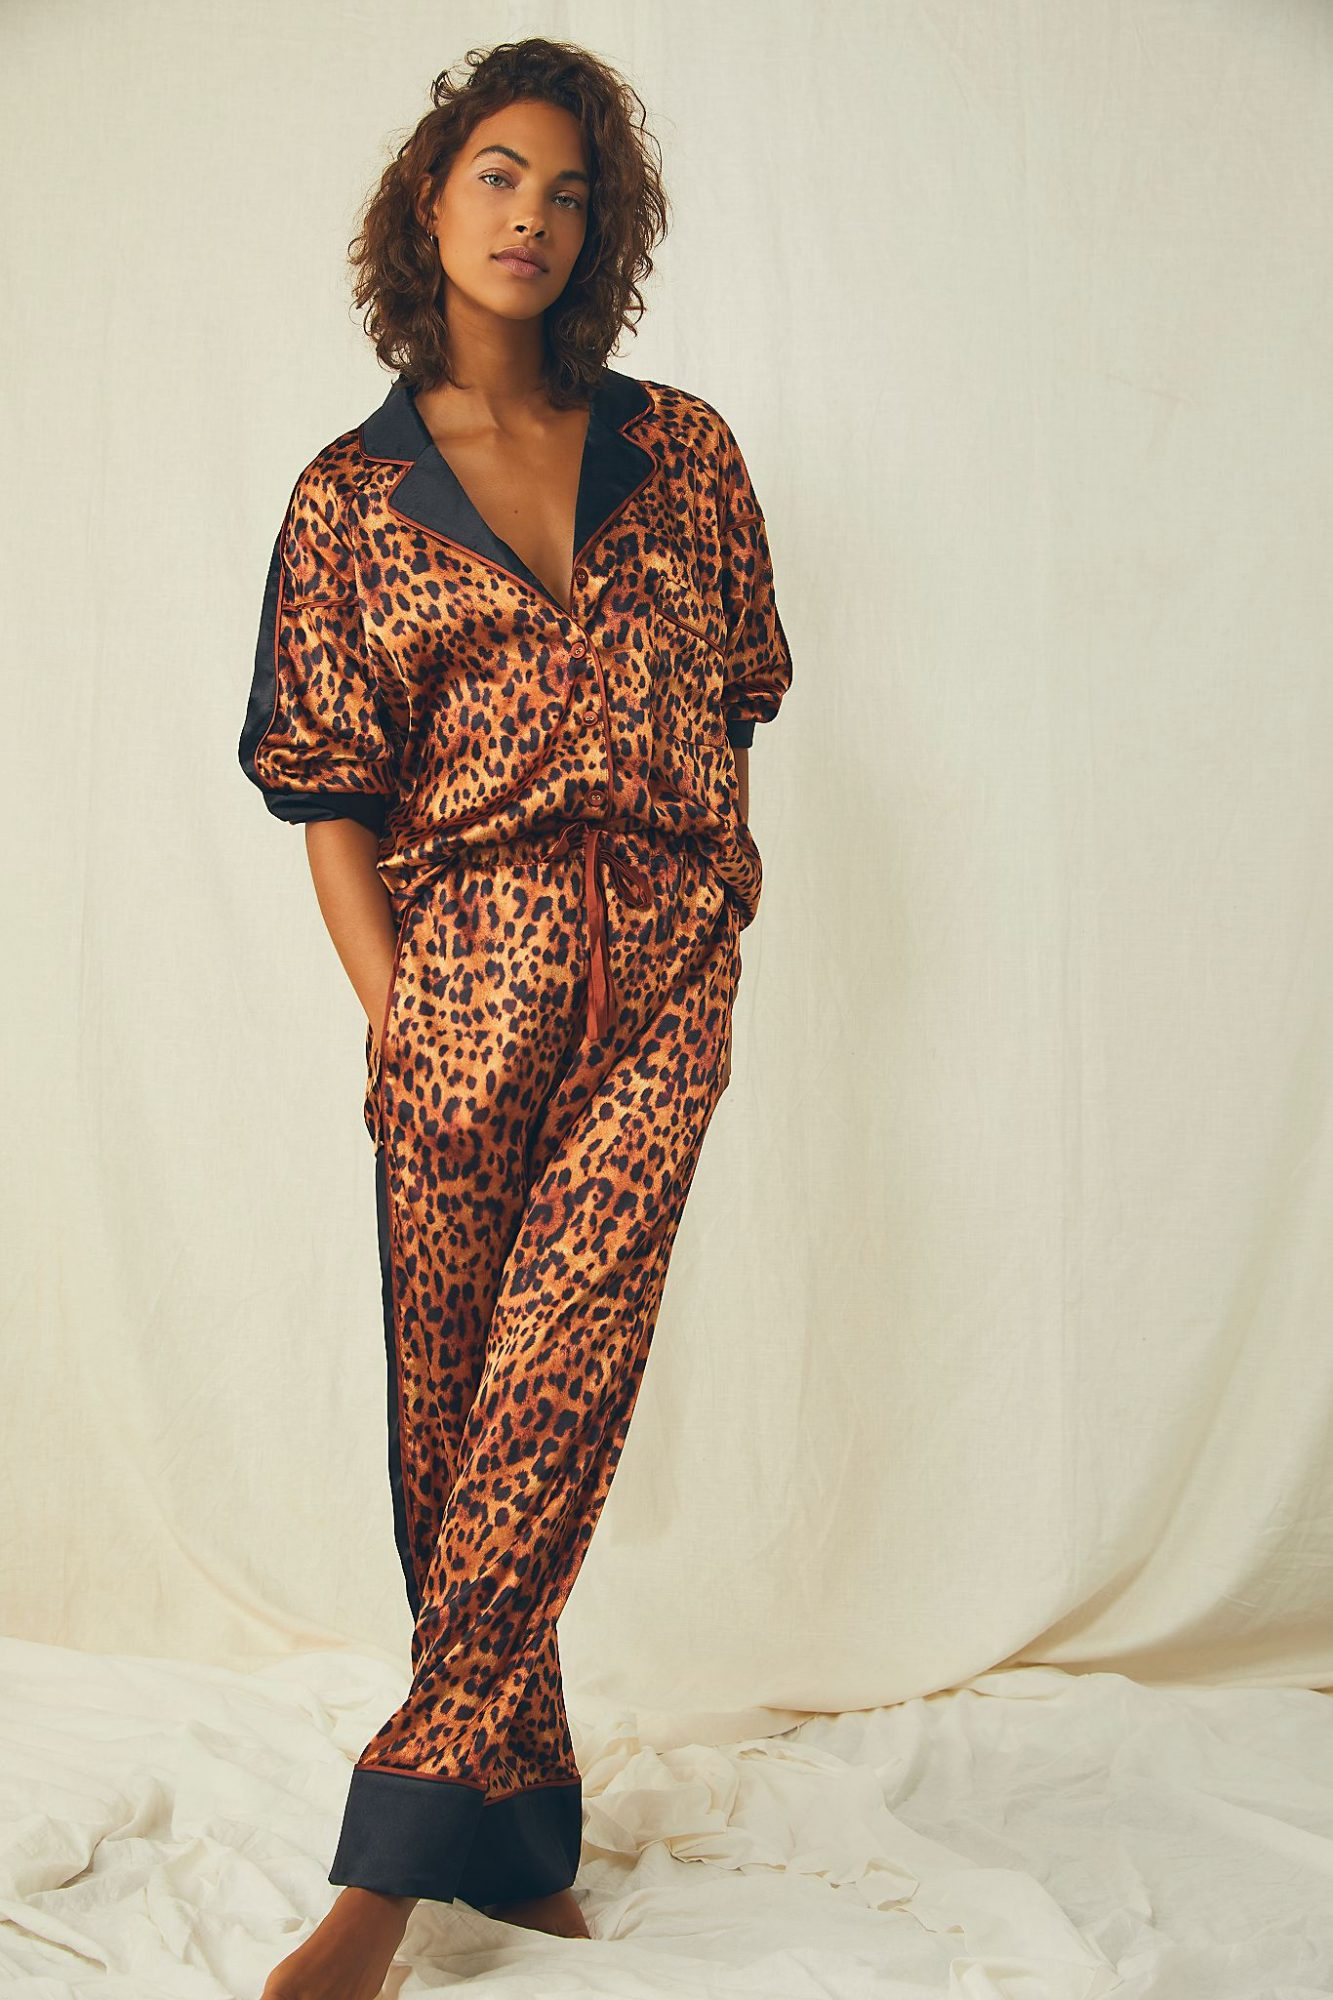 Anthropologie silk pajamas New Year's Eve outfit